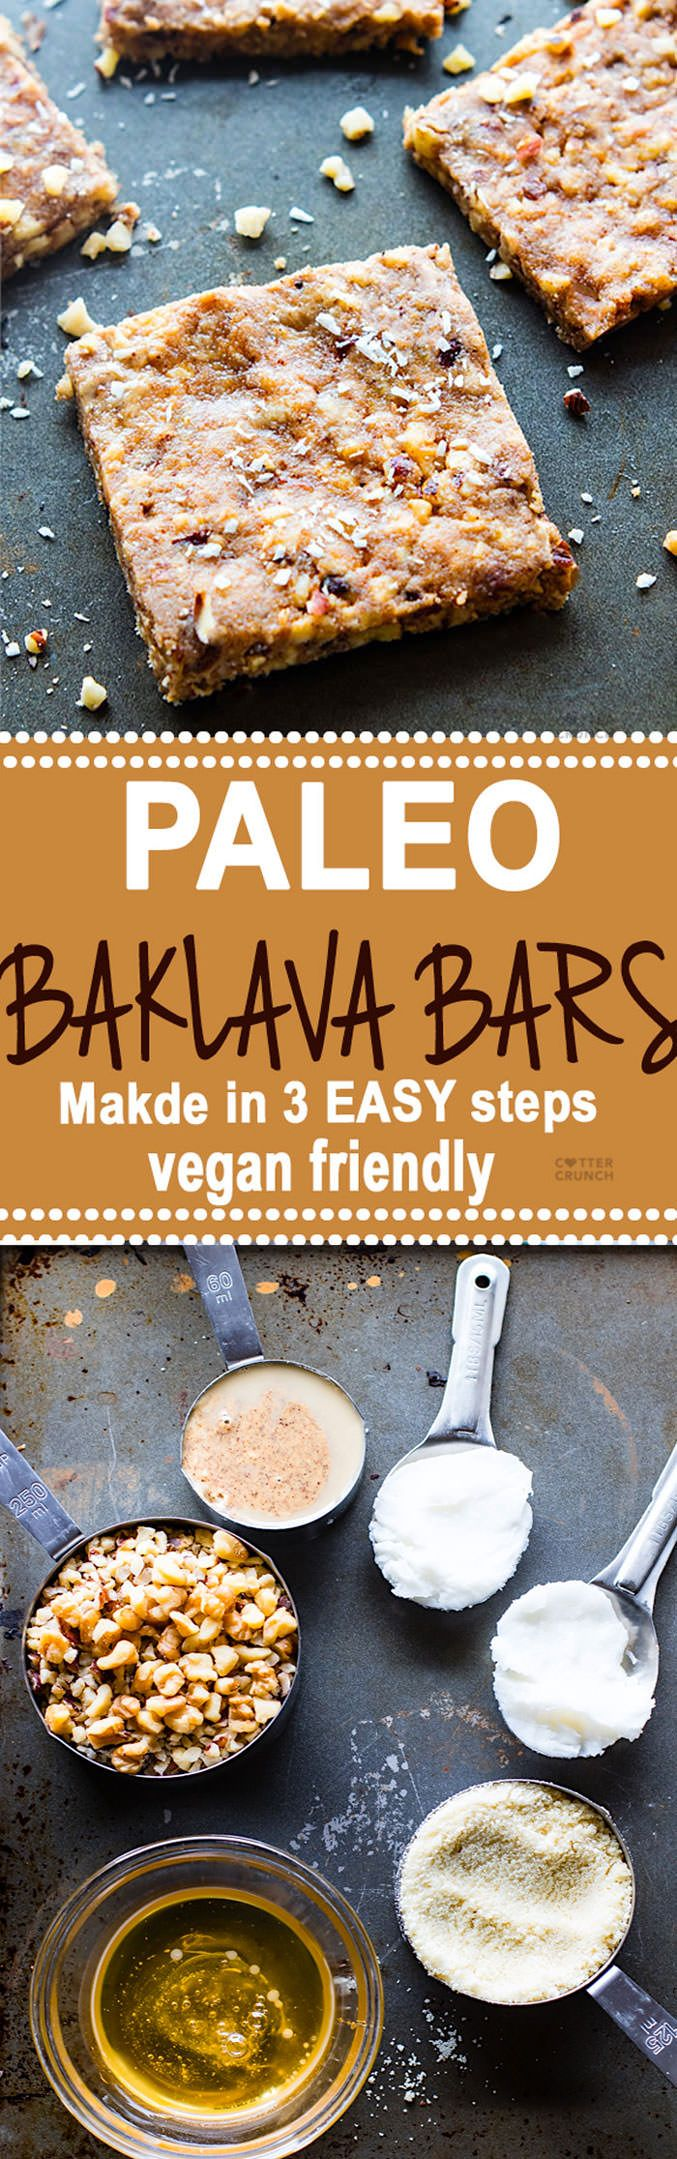 """Super easy 3 Step Paleo """"Baklava"""" Bars! healthy vegan friendly bars that are packed full of sweet nutty flavor and healthy fats. Lower in carbs, sugar, and great for snacking. @cottercrunch"""